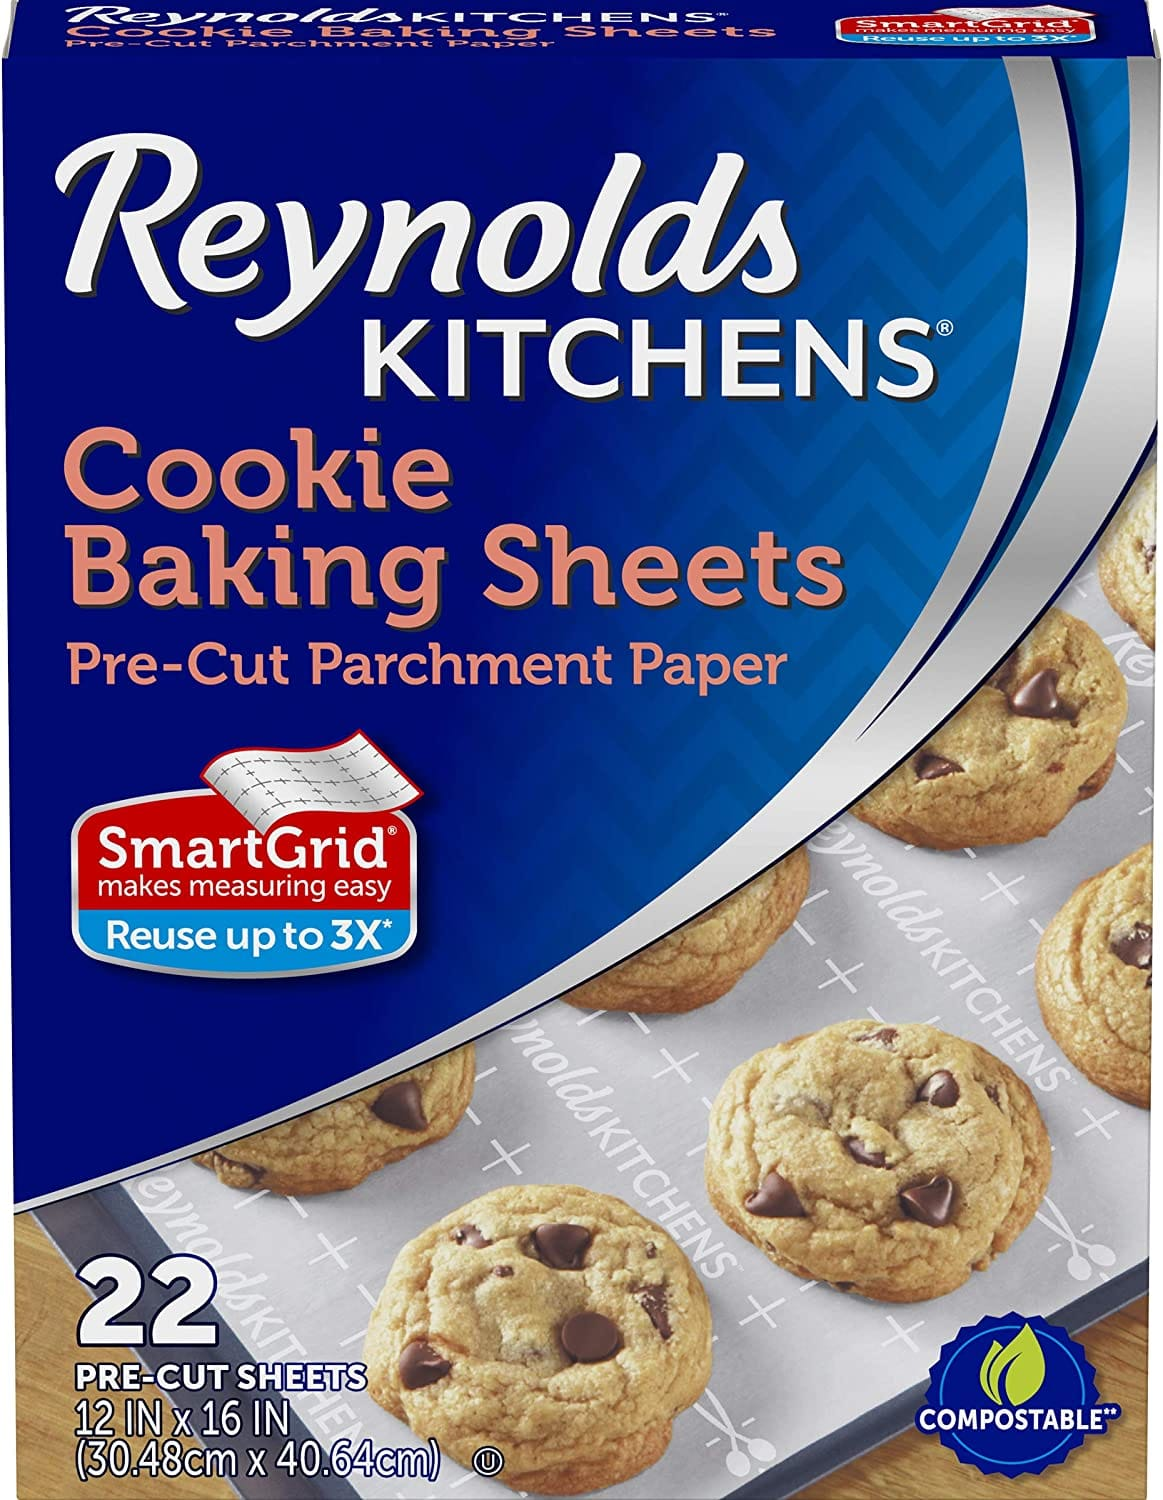 22-Ct Reynolds Kitchens Cookie Baking Sheets, Pre-Cut Parchment Paper $2.30 or less w/ S&S